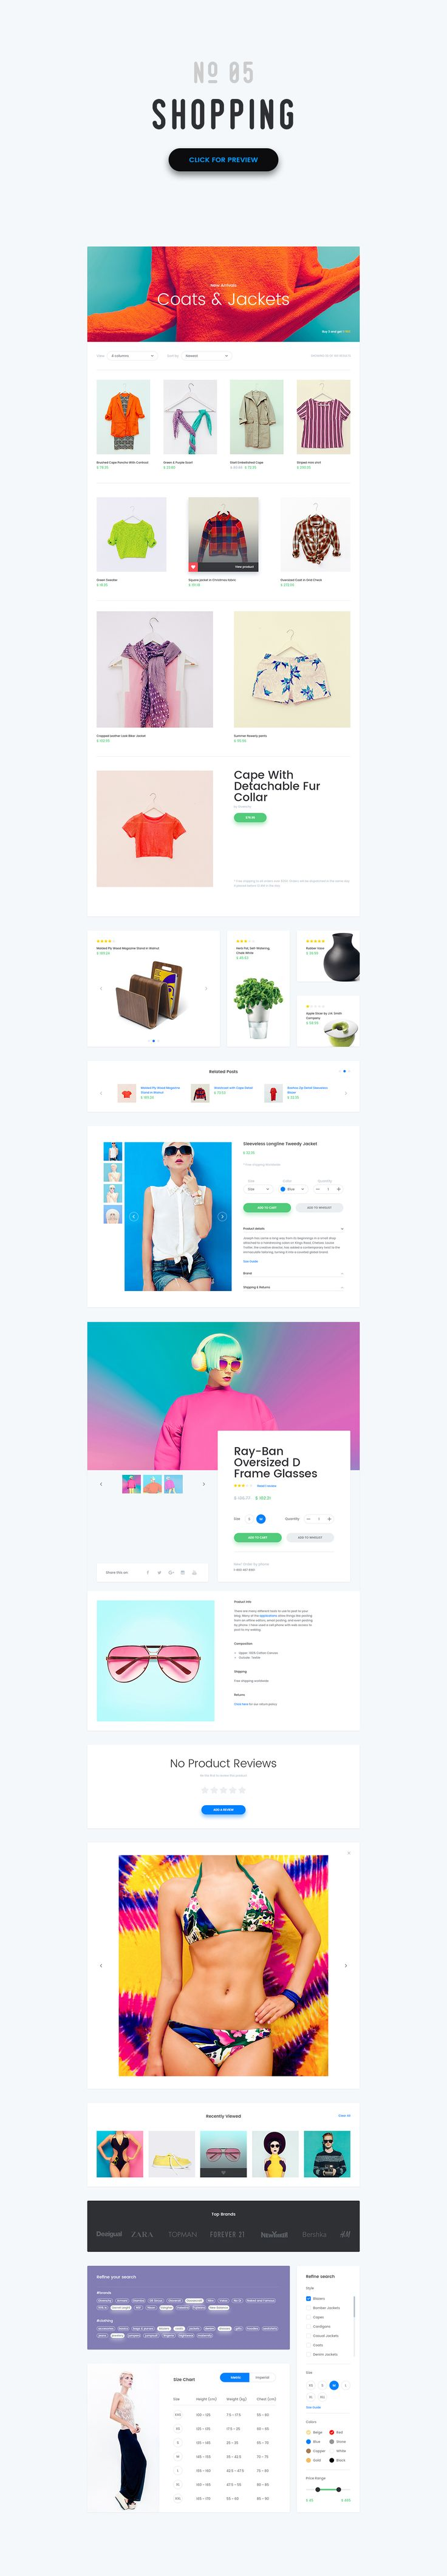 -20%- Vivid - Soft Material UI Kit by The UI Shop on Creative Market